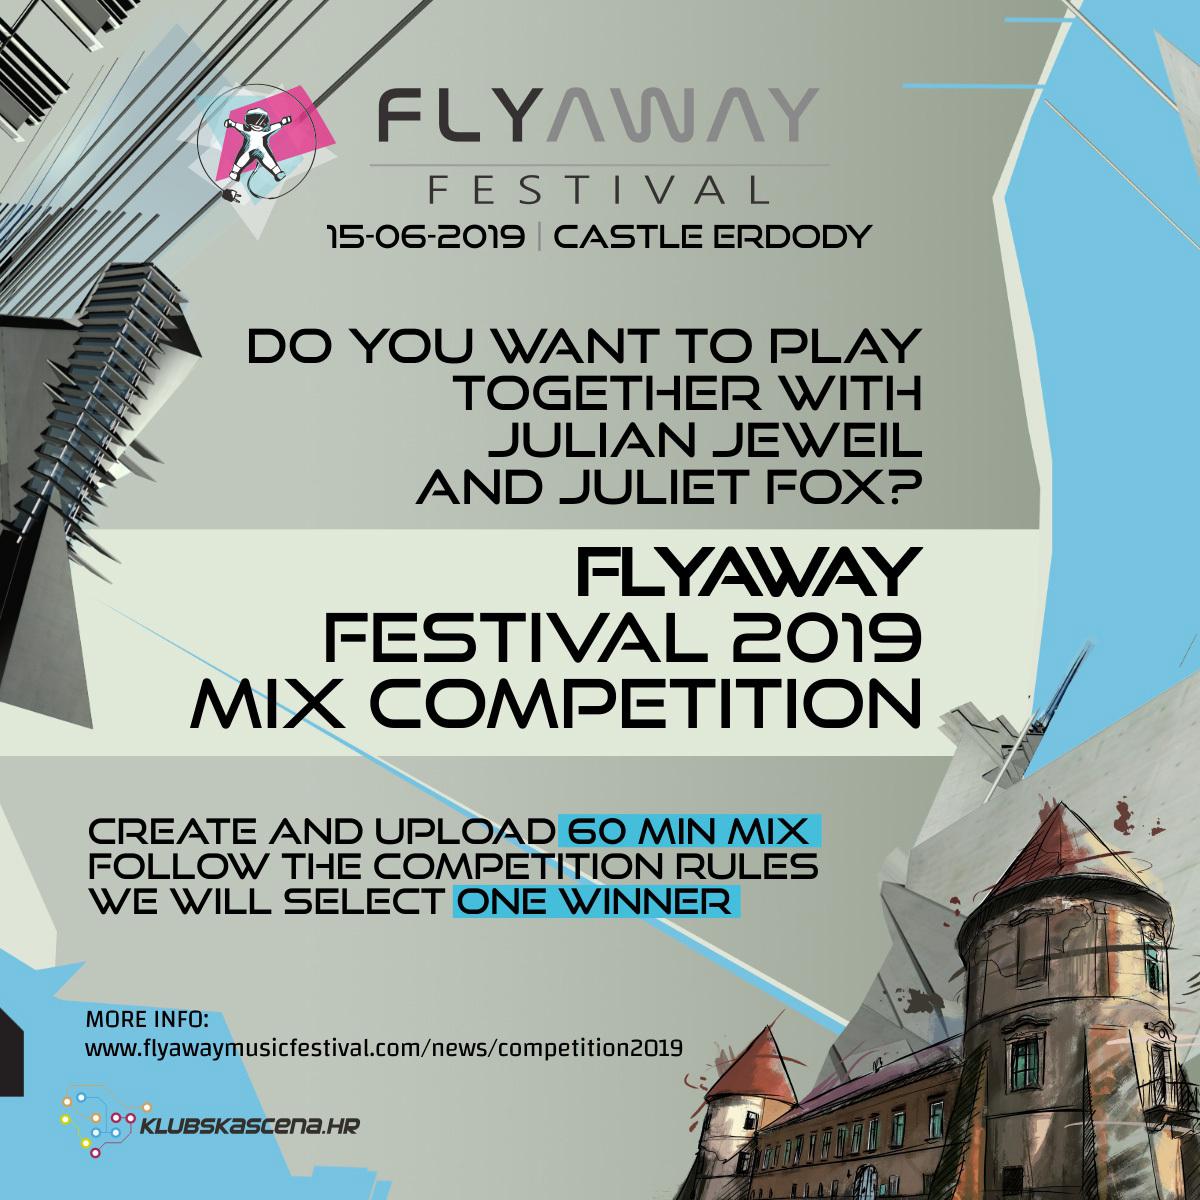 Flyaway mix competition.jpg